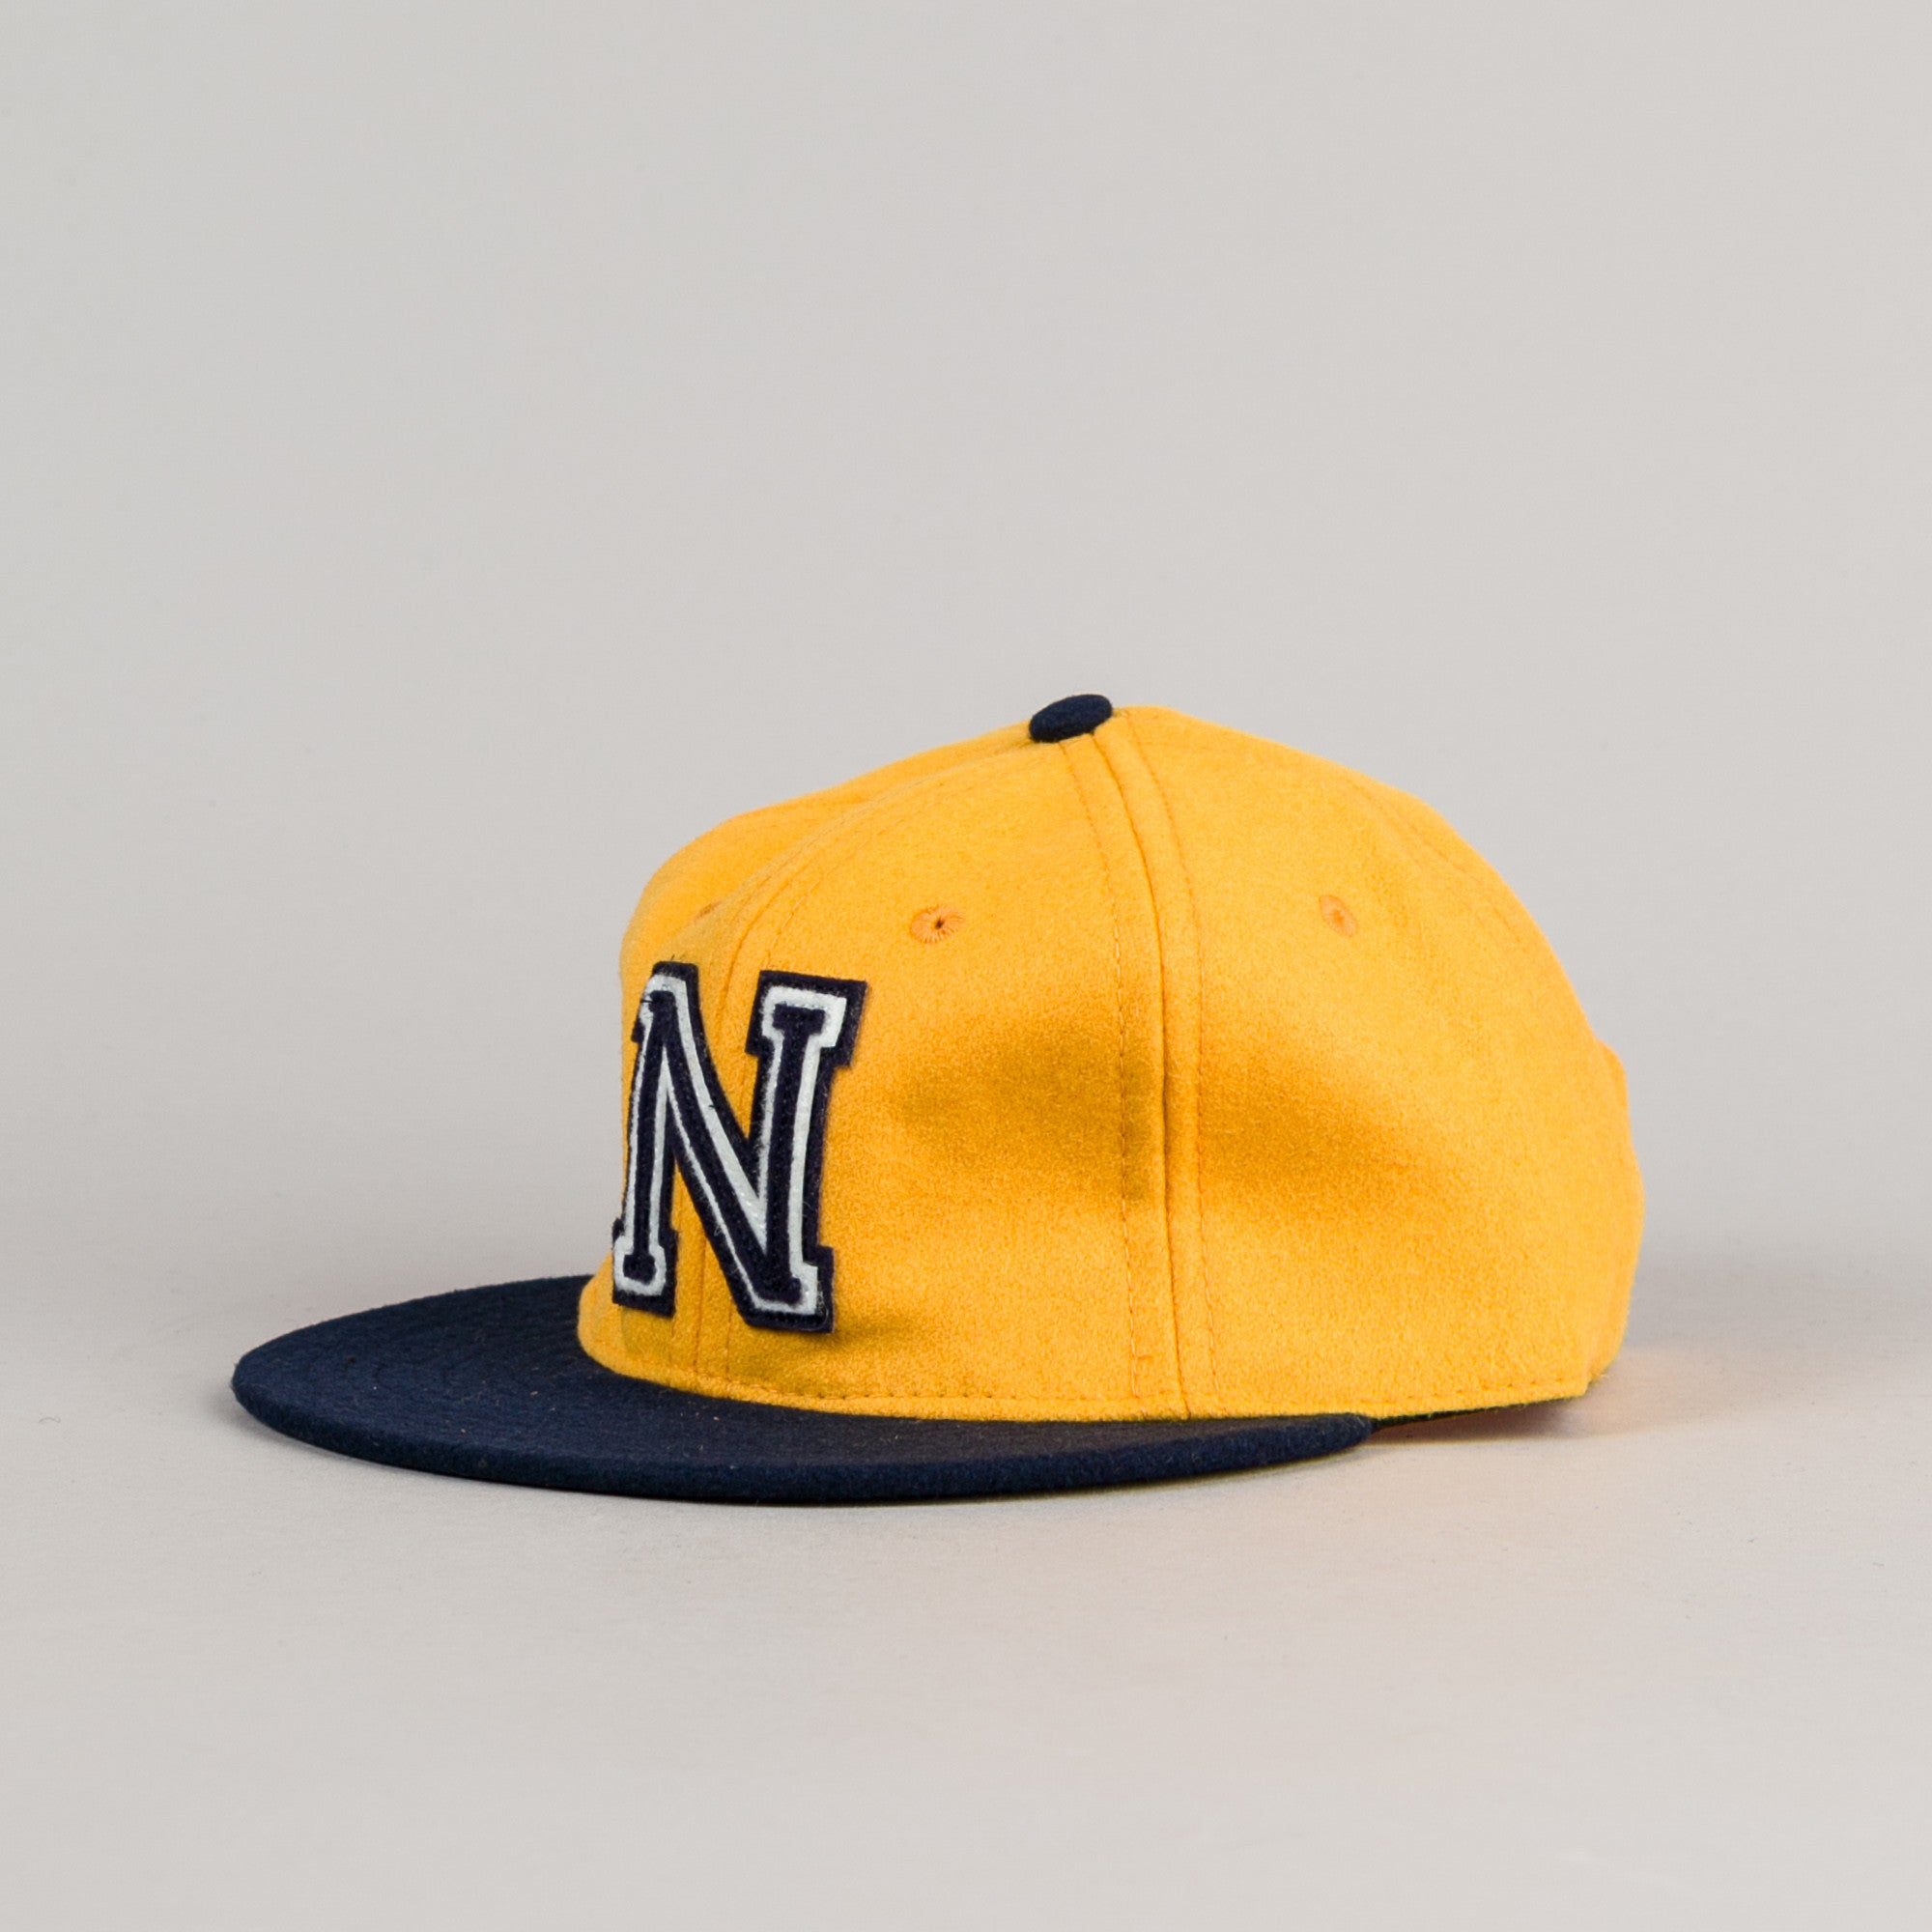 Ebbets Field Flannels US Naval Academy 1959 Cap - Yellow / Navy